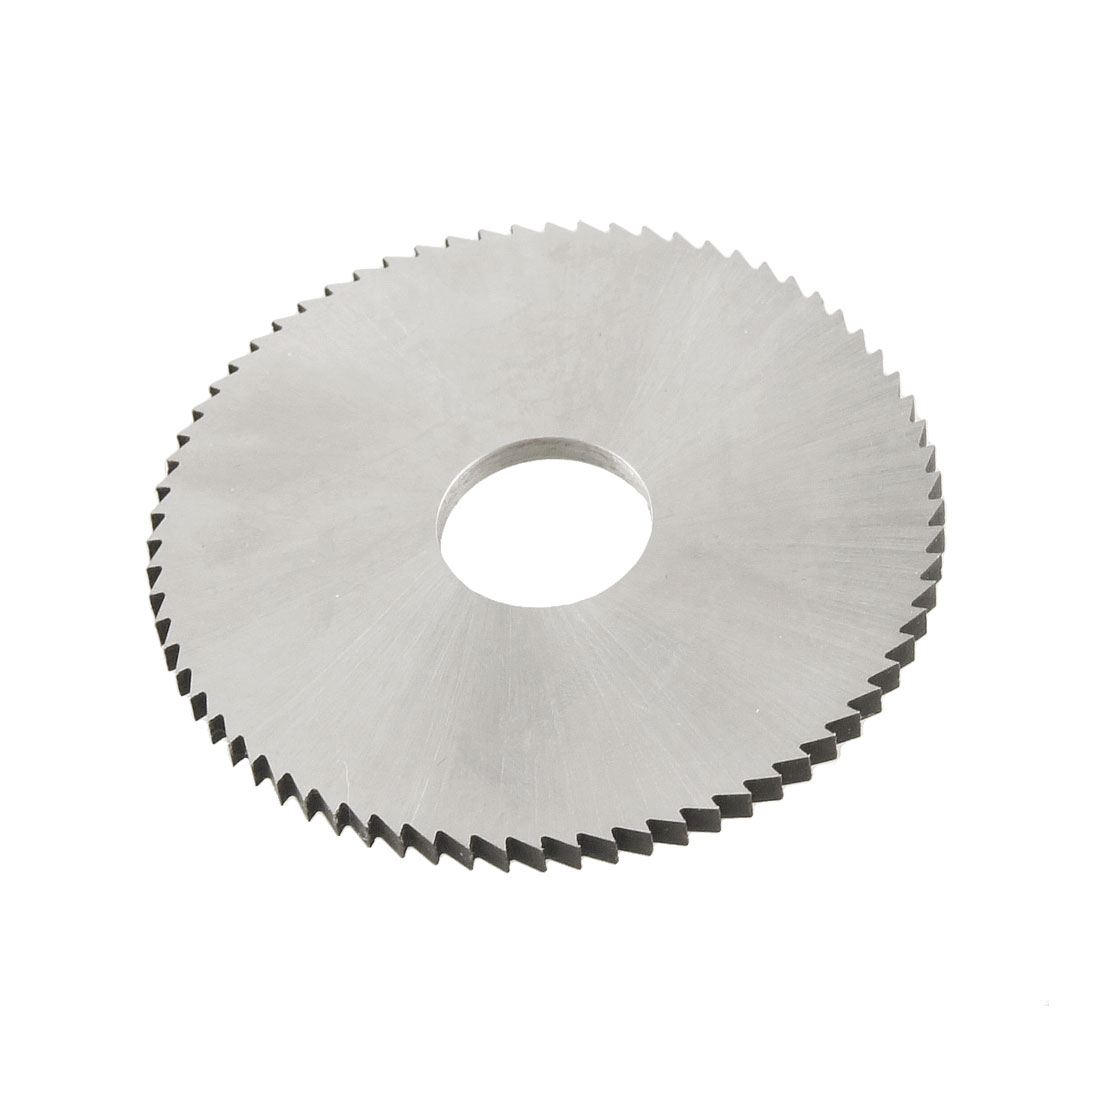 60mm x 3mm x 16mm HSS 72T Slitting Saw Blade Cutting Tool